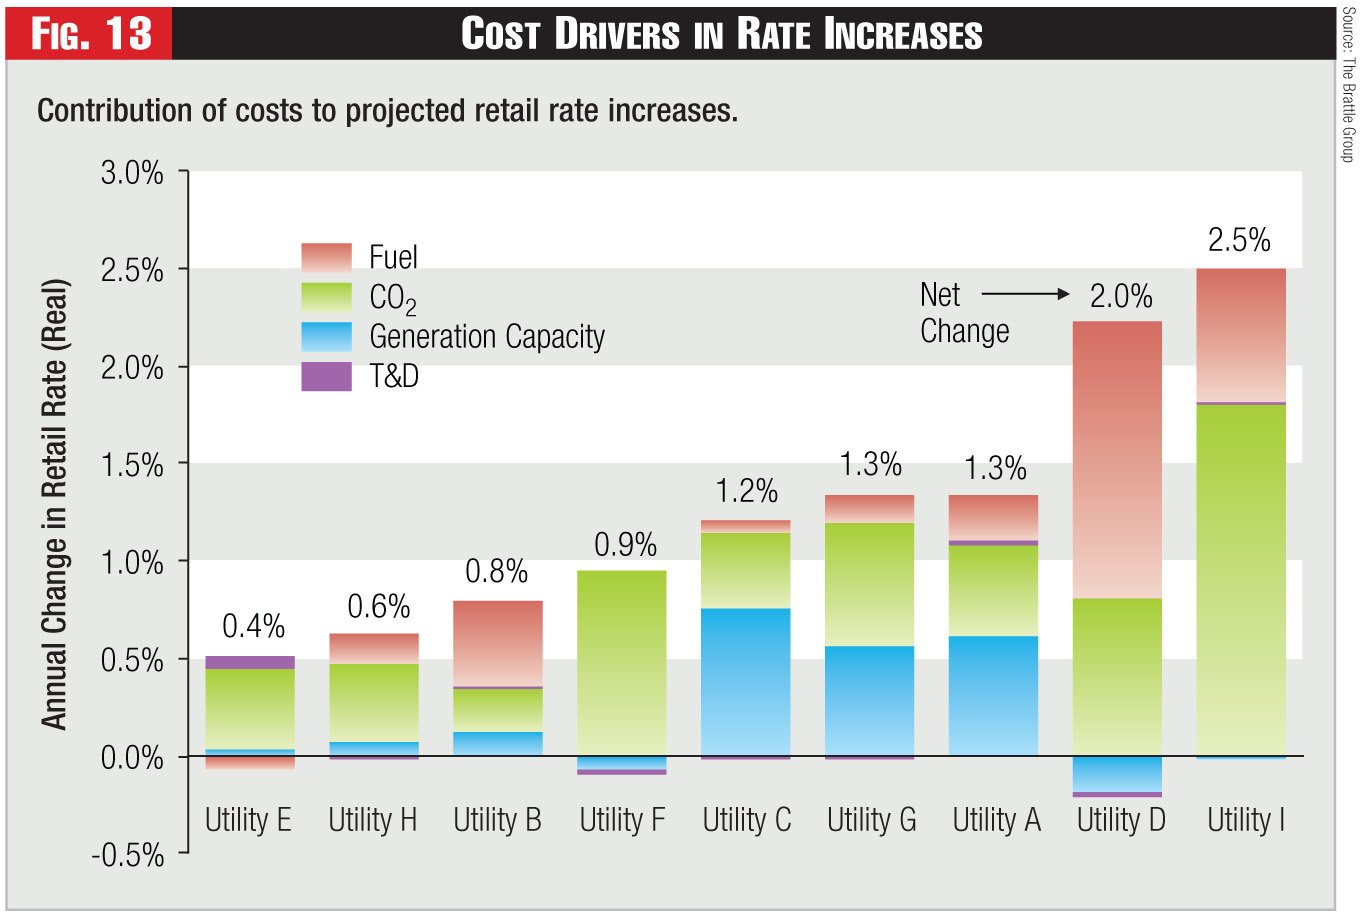 Figure 13 - Cost Drivers in Rate Increases